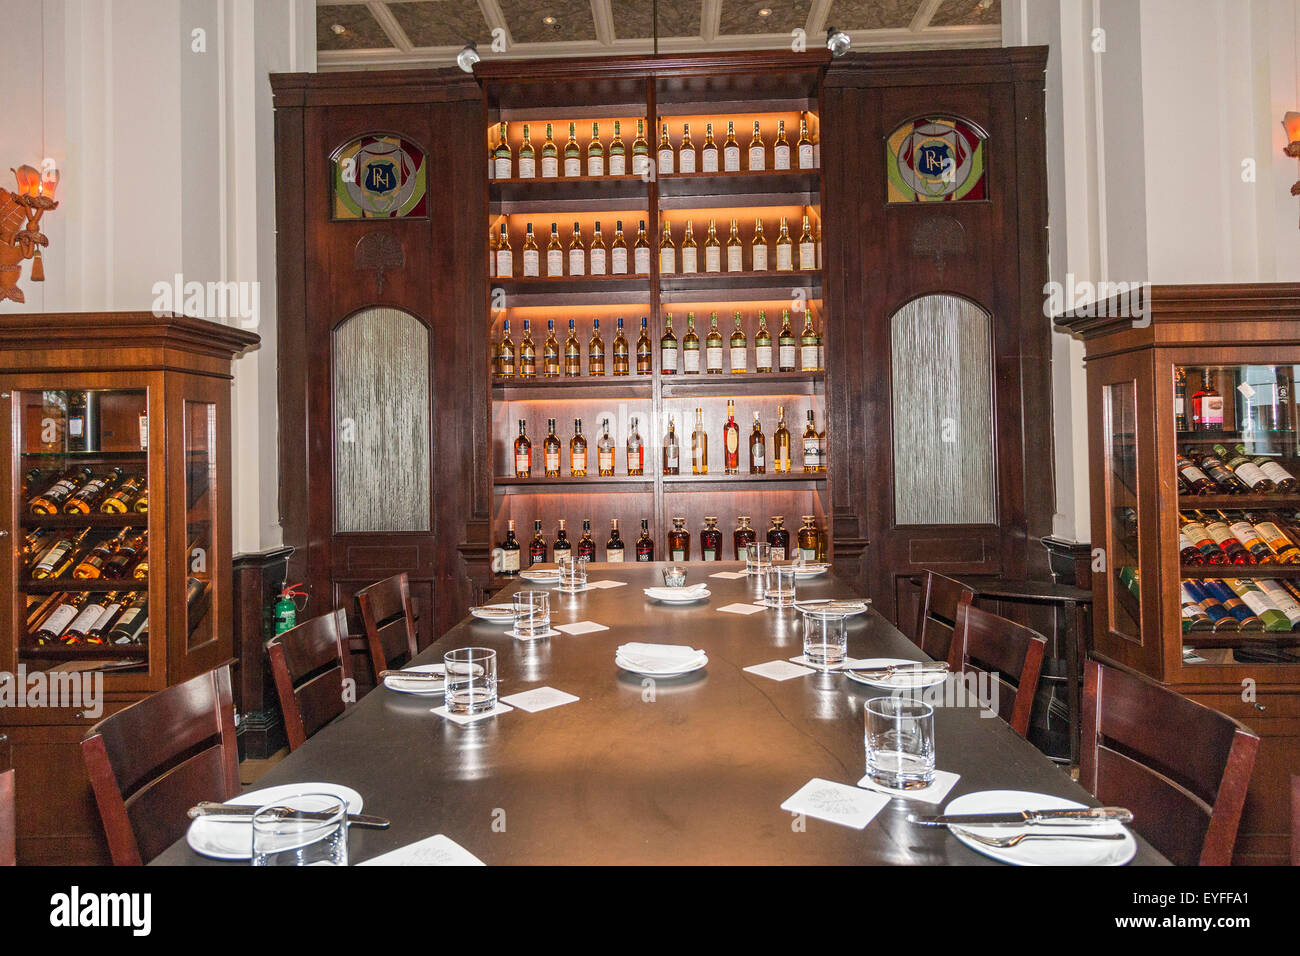 Bar and Billiard Room of Raffles Hotel, which was built in 1887 and has become Singapore's best known icon. - Stock Image